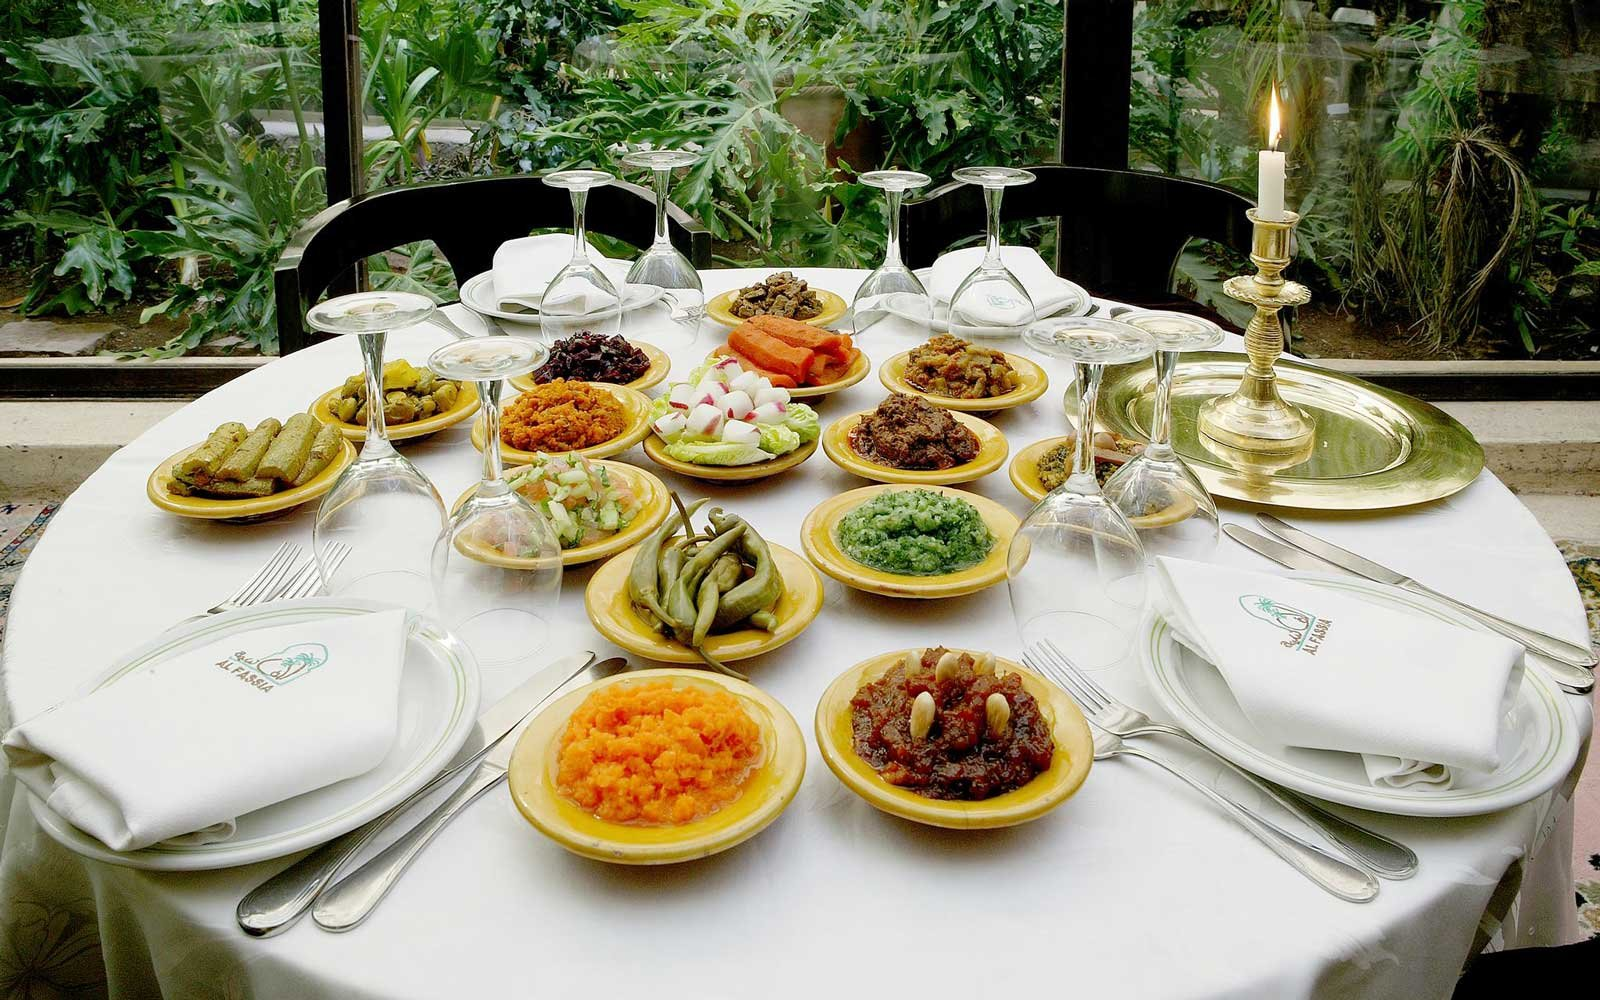 A spread of dishes at Al Fassia restaurant, in the Gueliz neighborhood of Marrakech